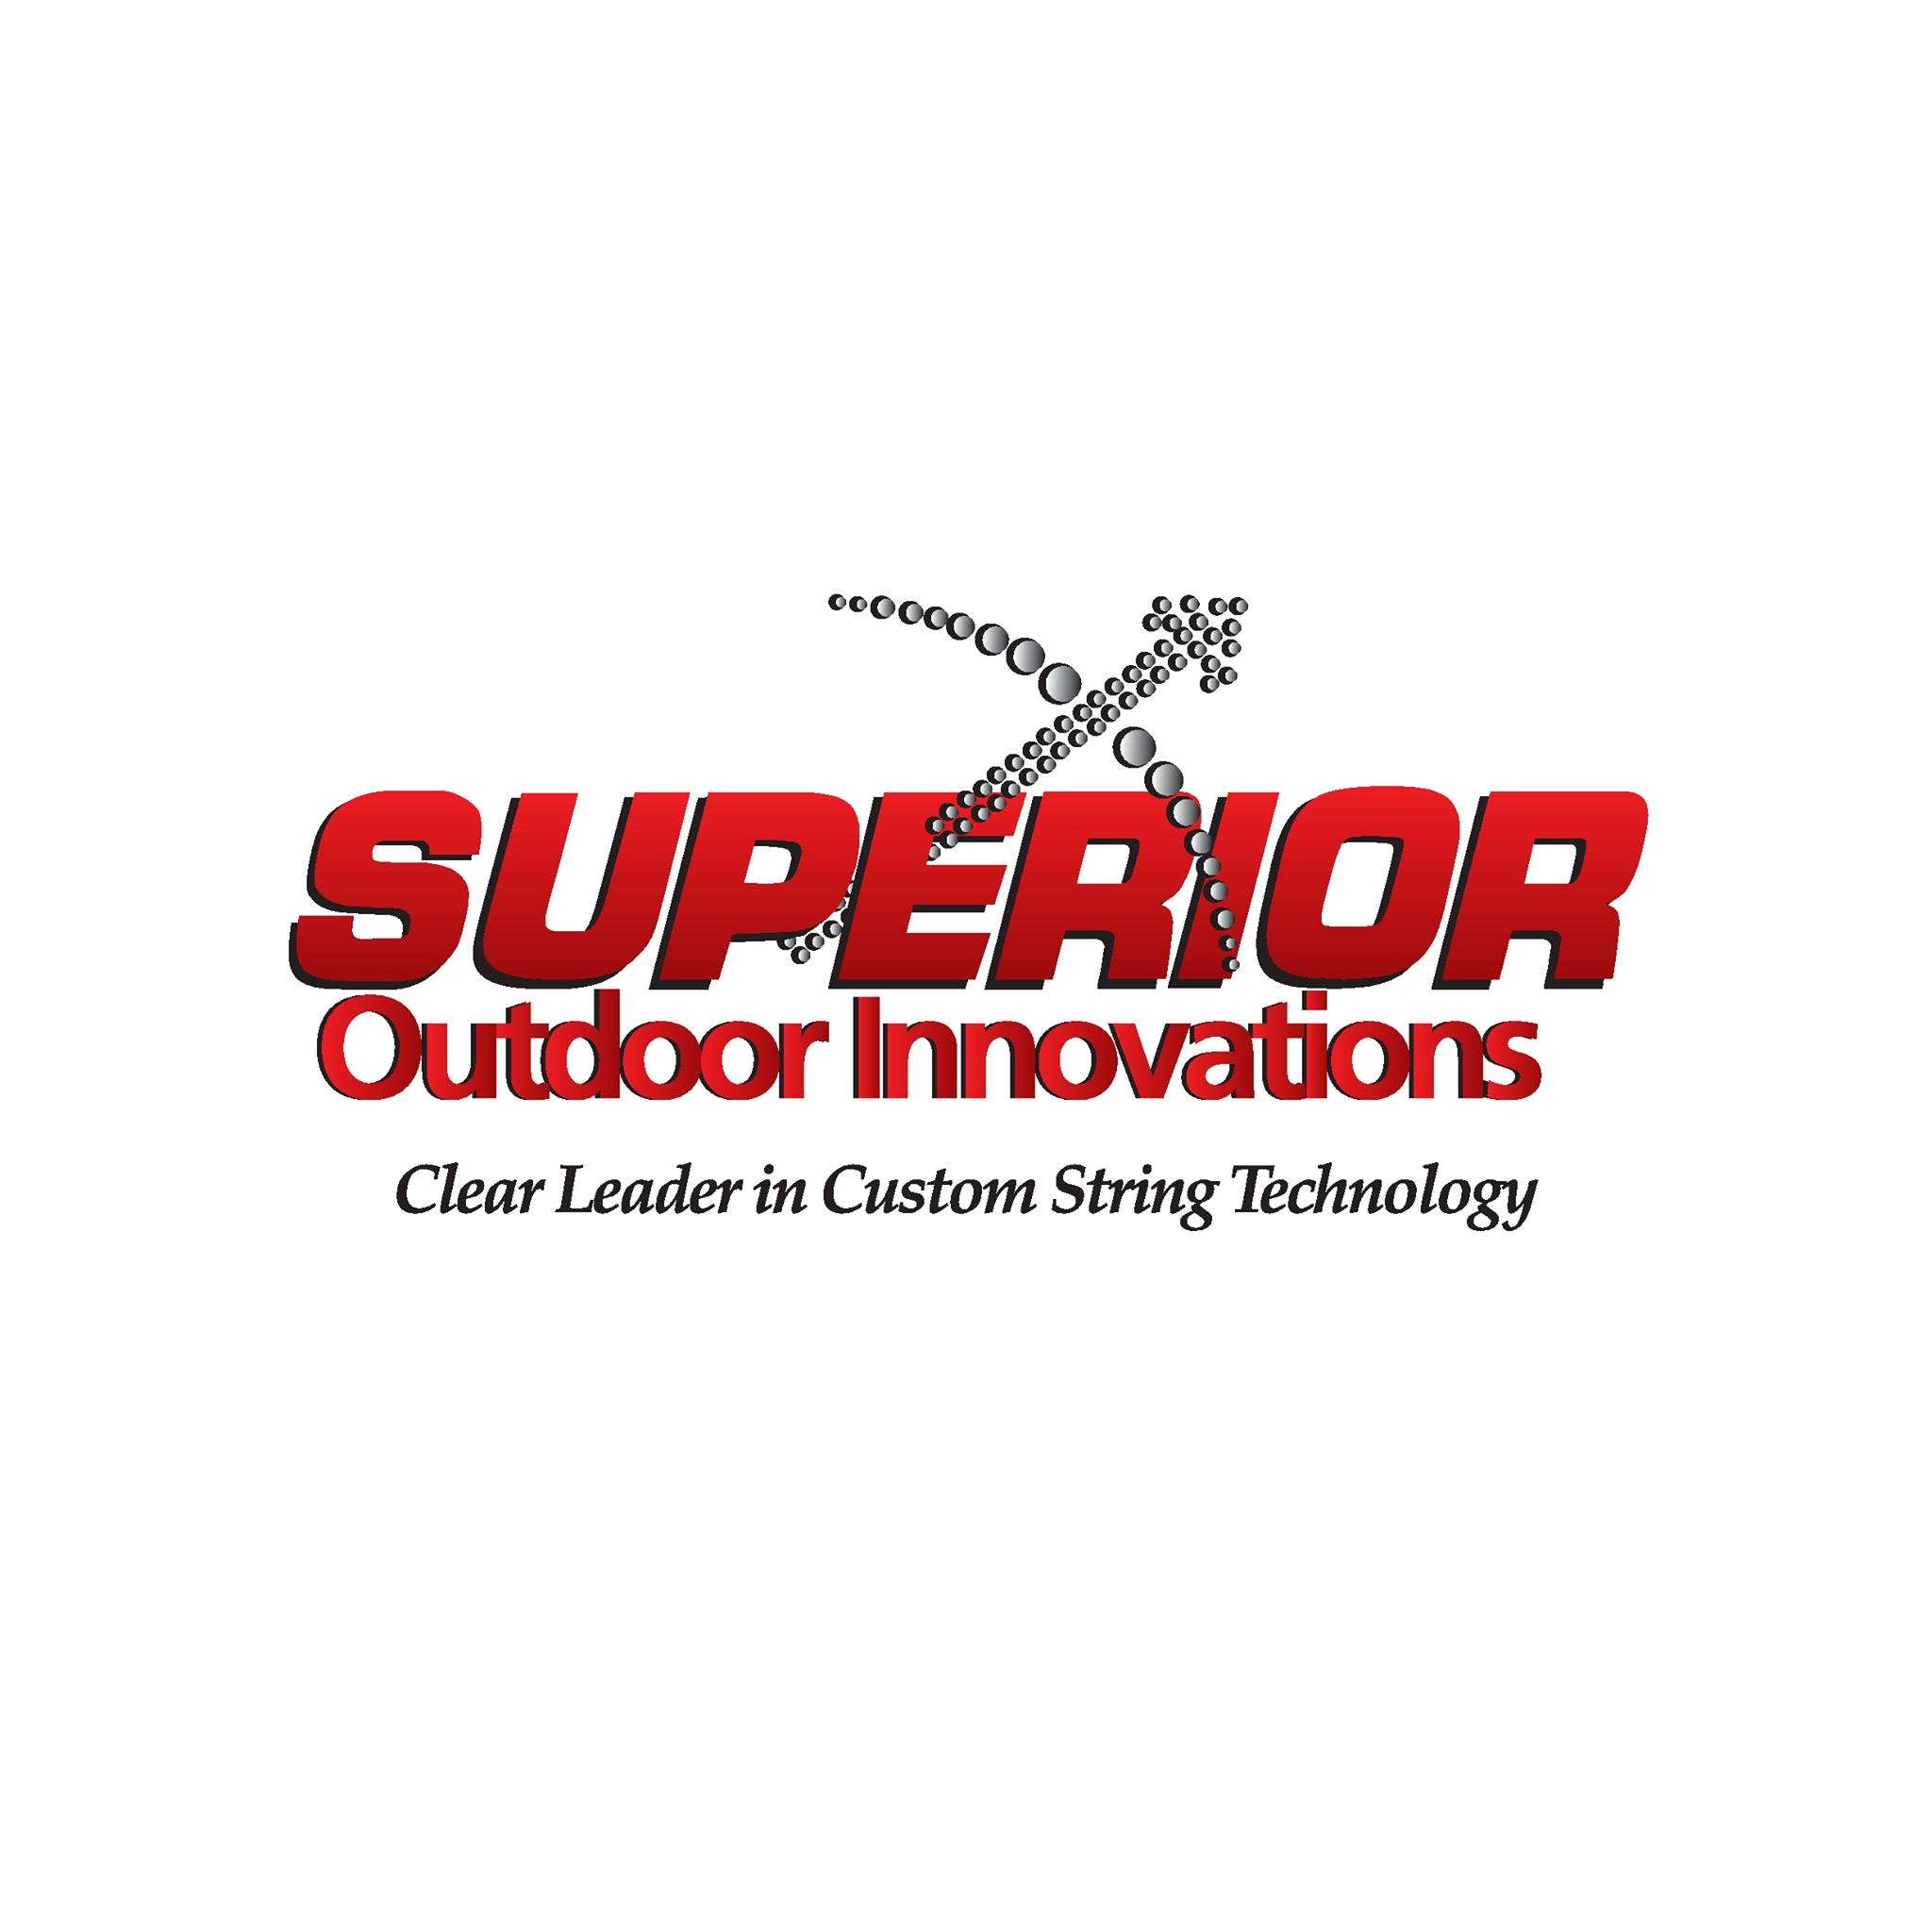 Superior Outdoor Innovations